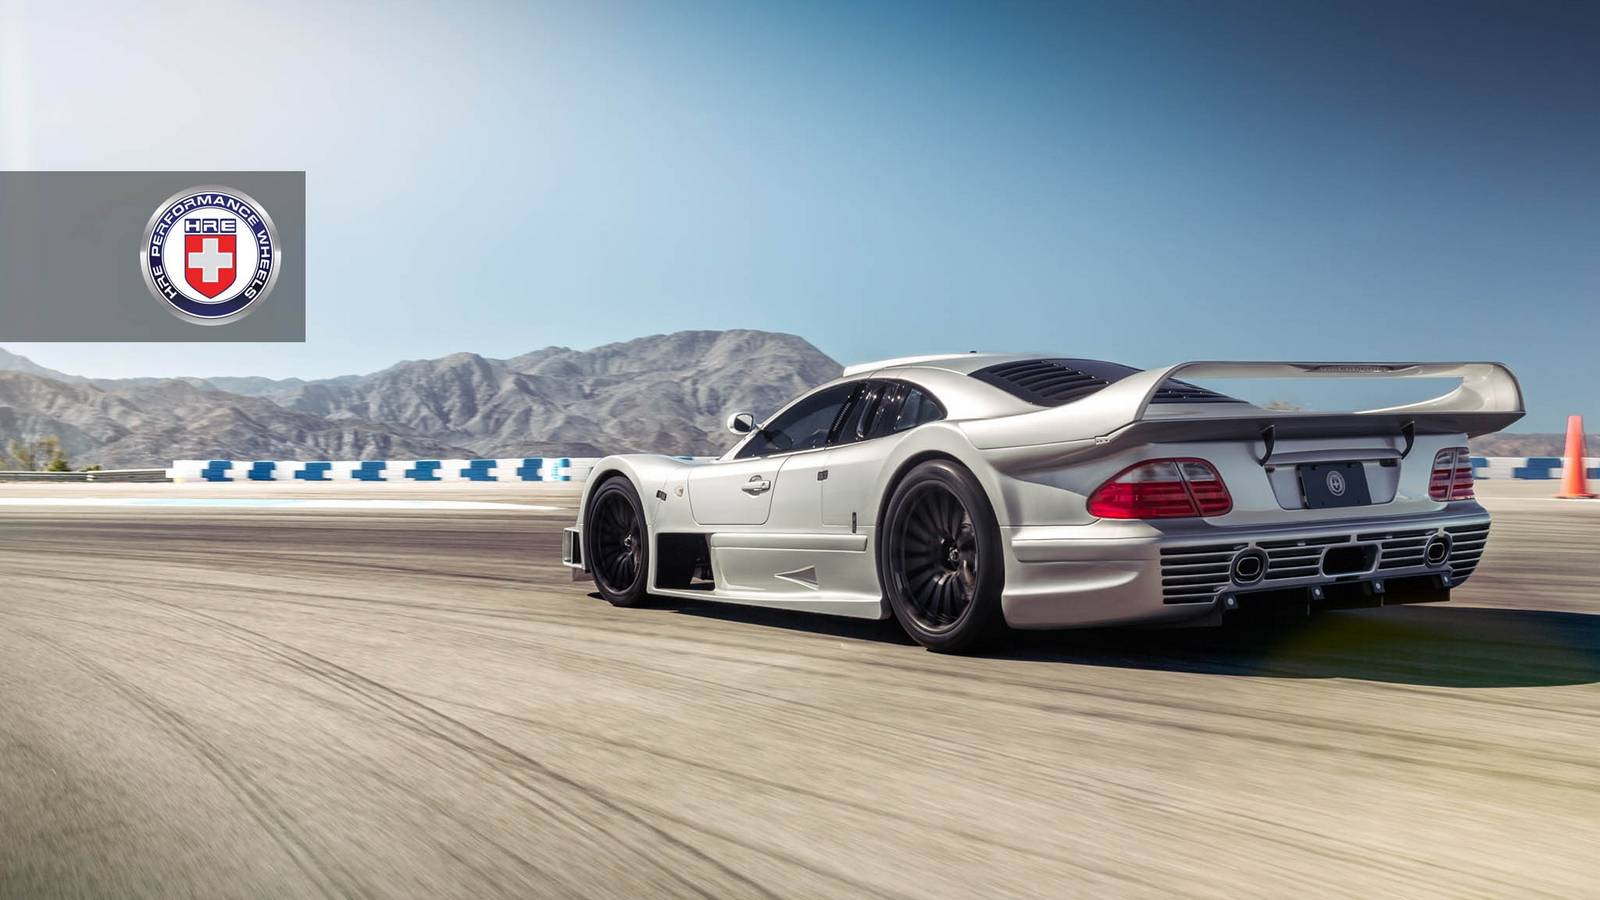 Stunning mercedes benz clk gtr with satin black hre wheels for Mercedes benz in phoenix